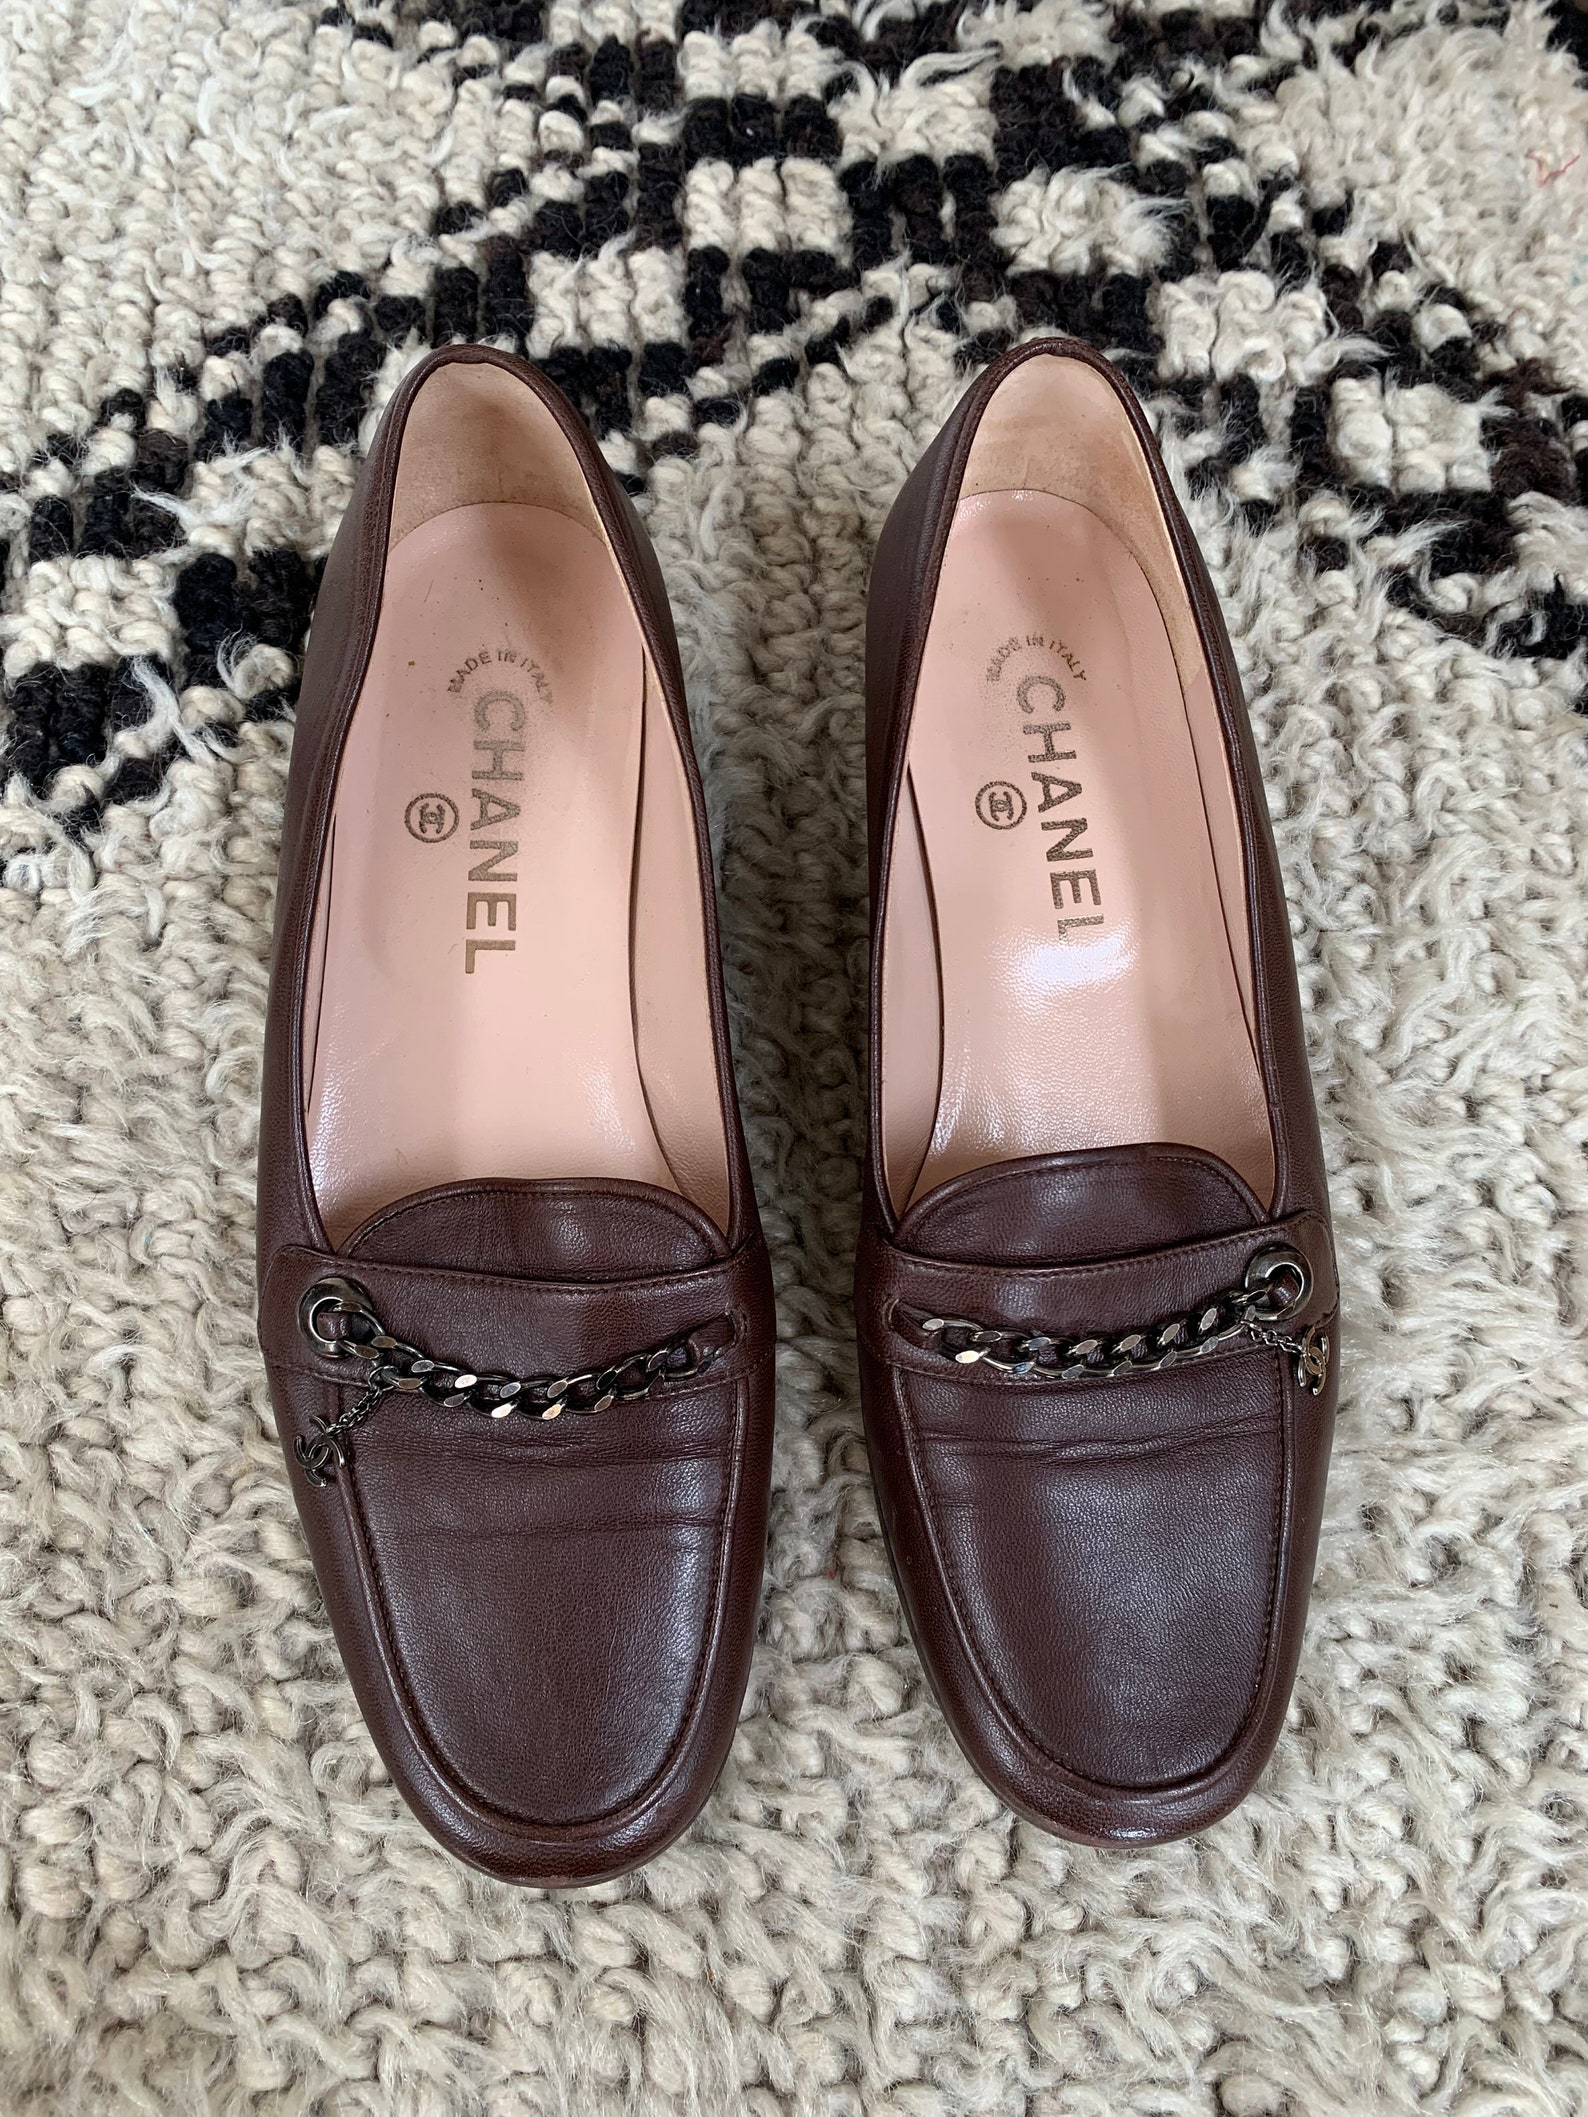 vintage chanel silver metal cc logo chain brown leather loafers flats driving shoes smoking slippers ballet flats eu 37 us 6 - 6